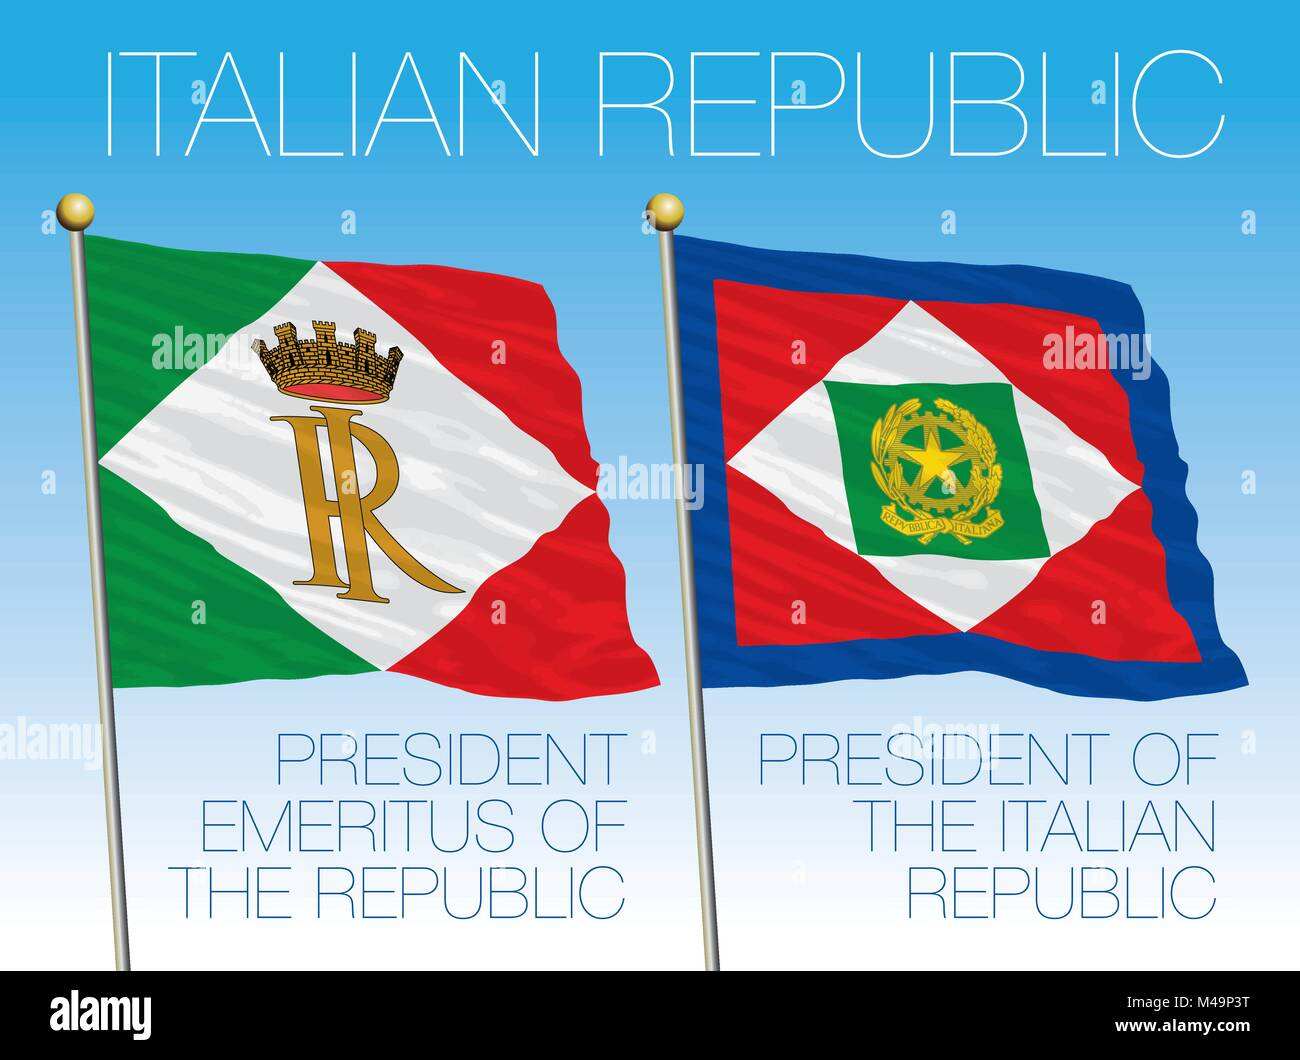 Presidential flags, Italian Republic, Quirinale, Rome, Italy - Stock Vector